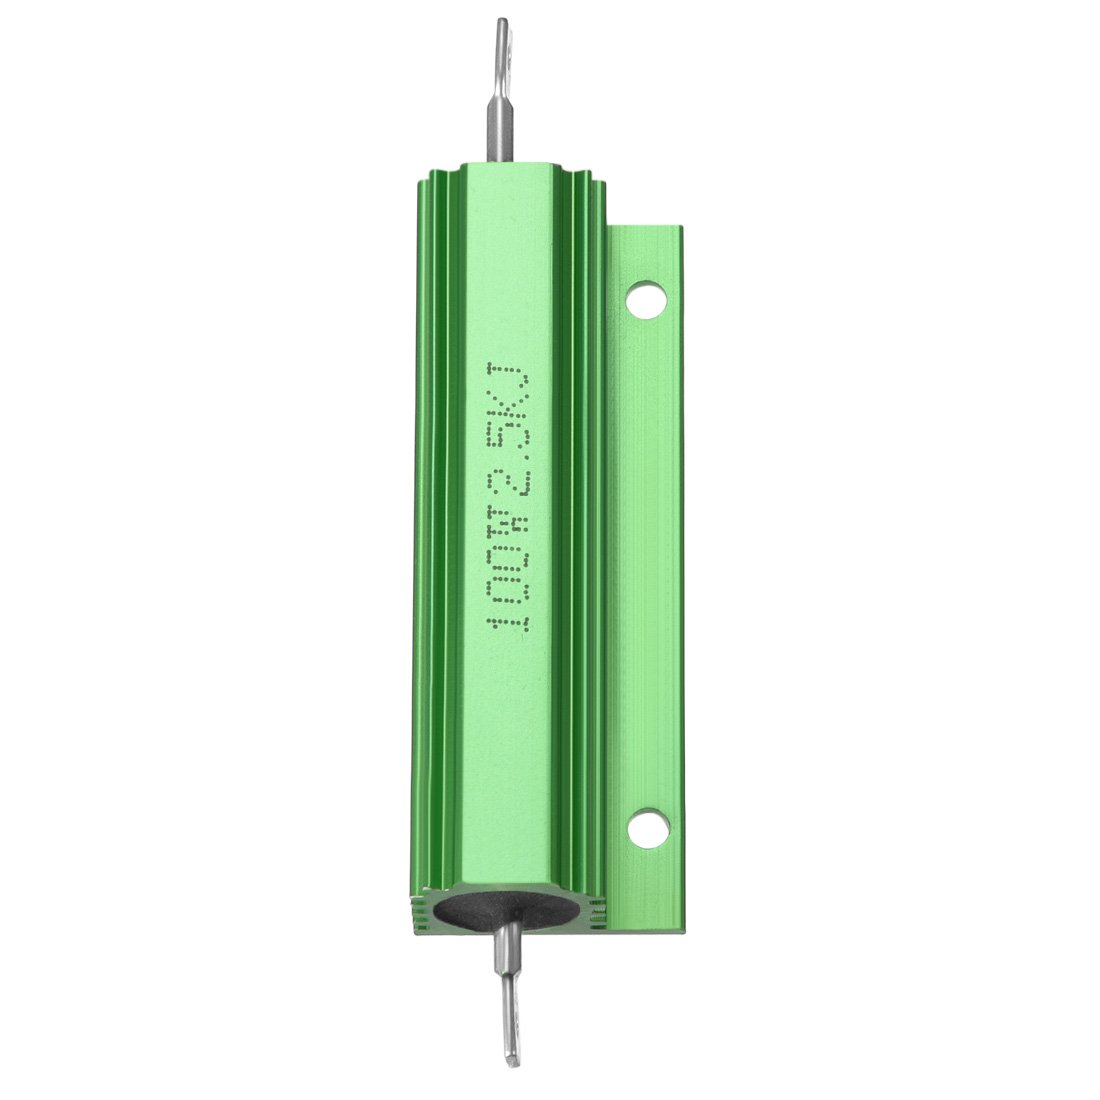 sourcingmap 2 Pcs Aluminum Case Resistor 100W 2.5k Ohm Wirewound Green for LED Replacement Converter 100W 2.5k RJ